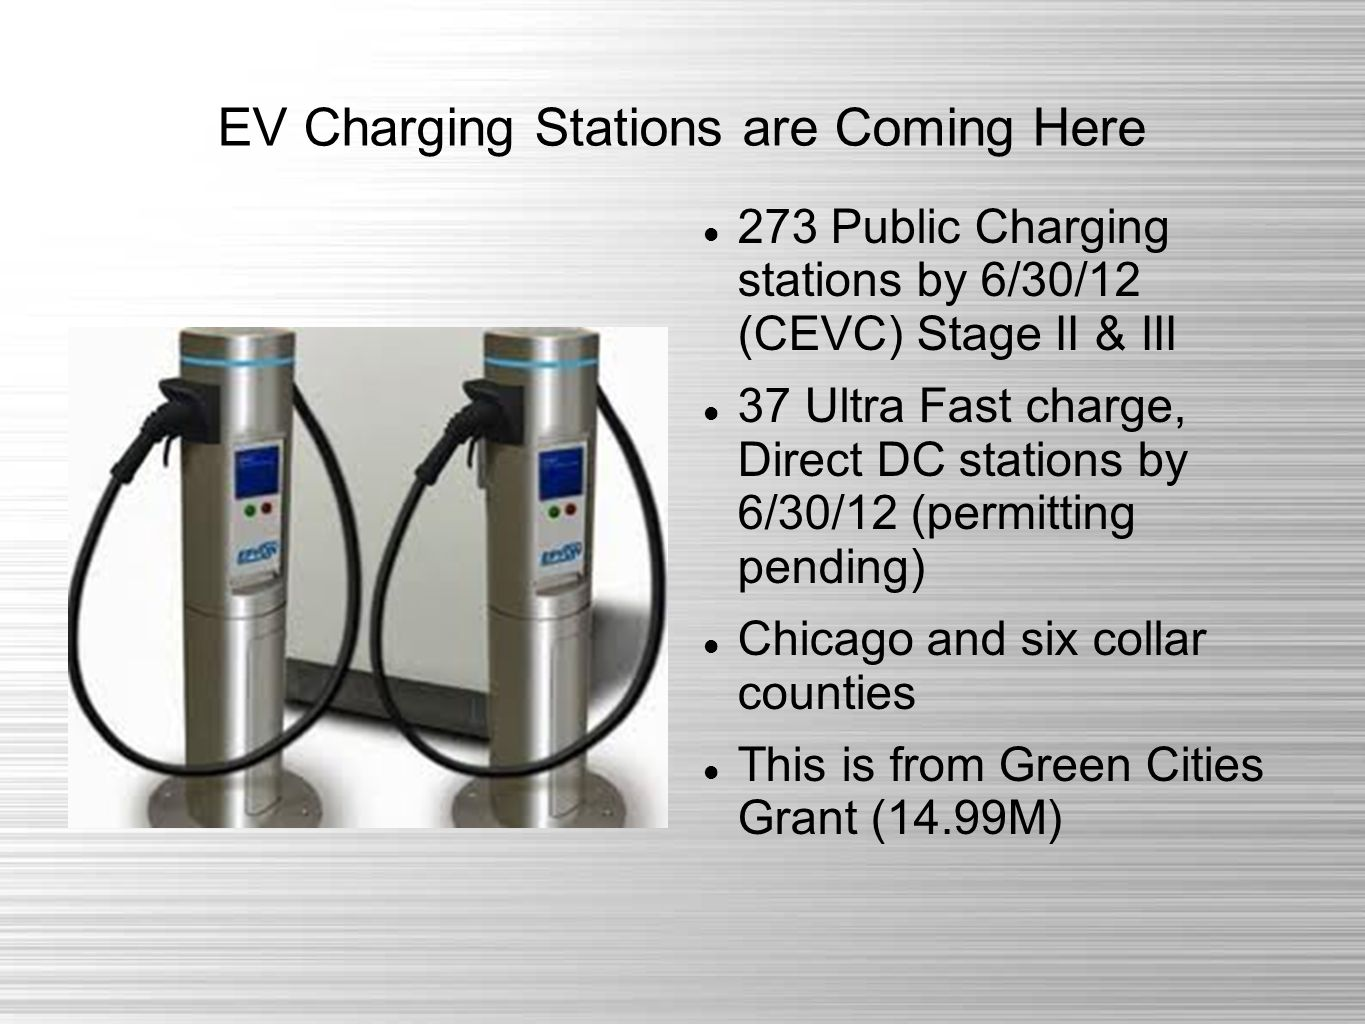 EV Charging Stations are Coming Here 273 Public Charging stations by 6/30/12 (CEVC) Stage II & III 37 Ultra Fast charge, Direct DC stations by 6/30/12 (permitting pending) Chicago and six collar counties This is from Green Cities Grant (14.99M)